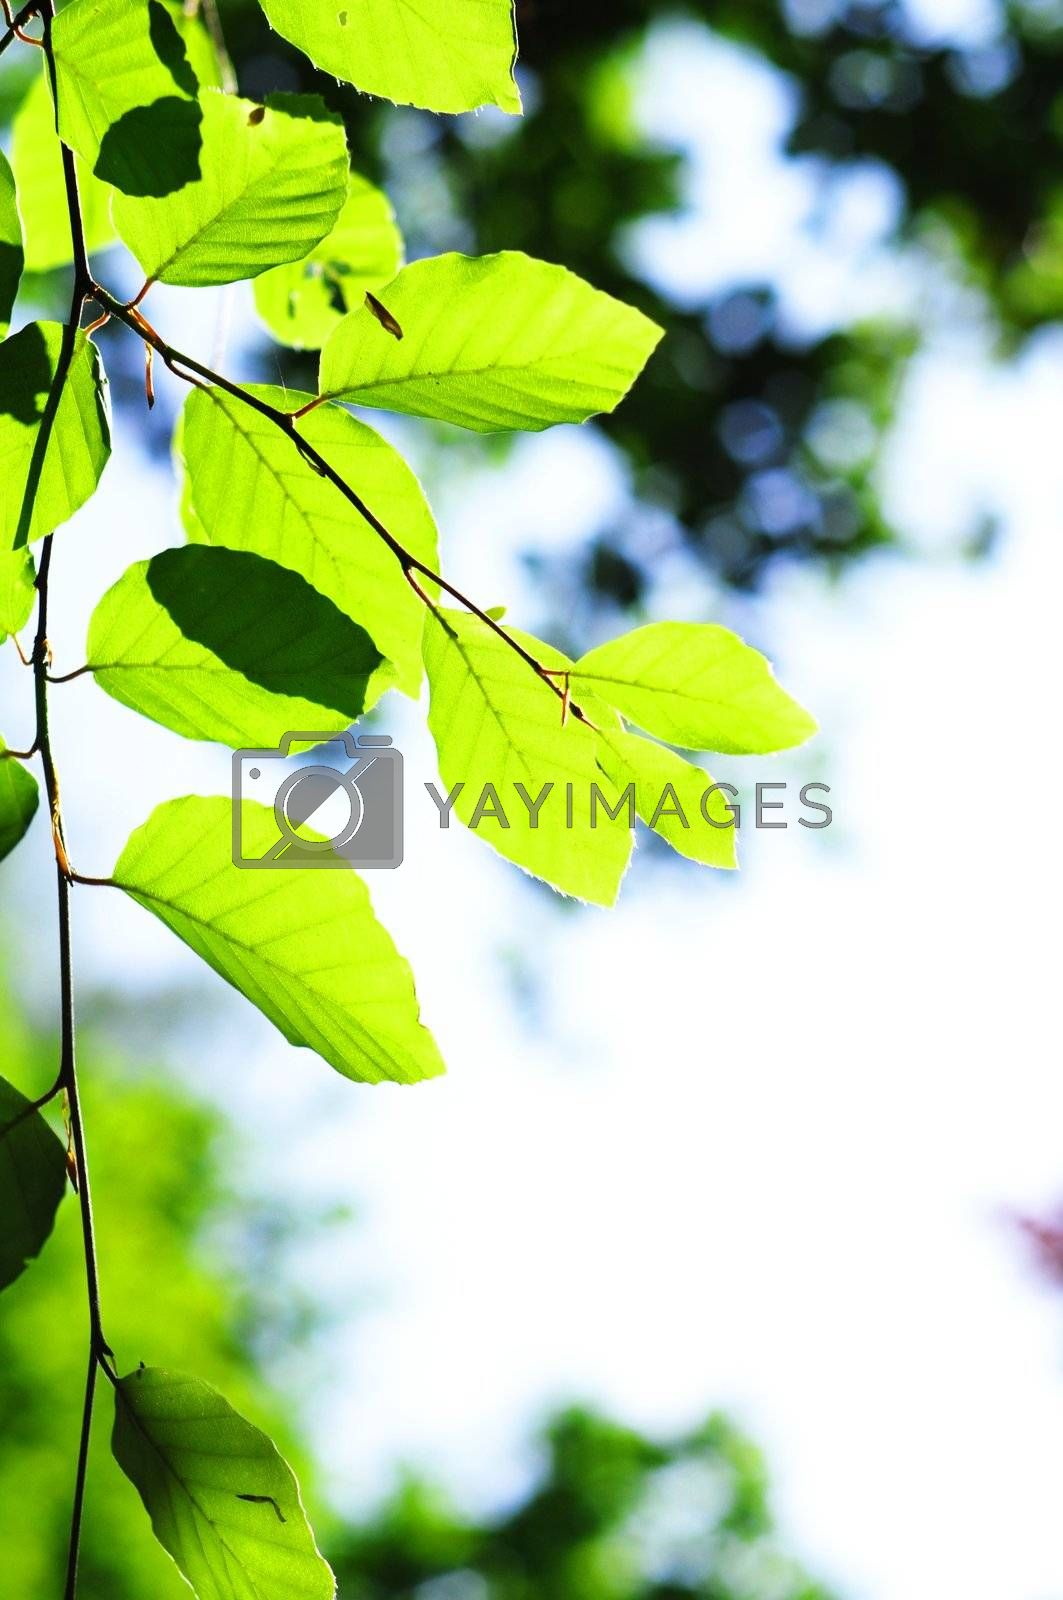 Royalty free image of beautyful nature by gunnar3000